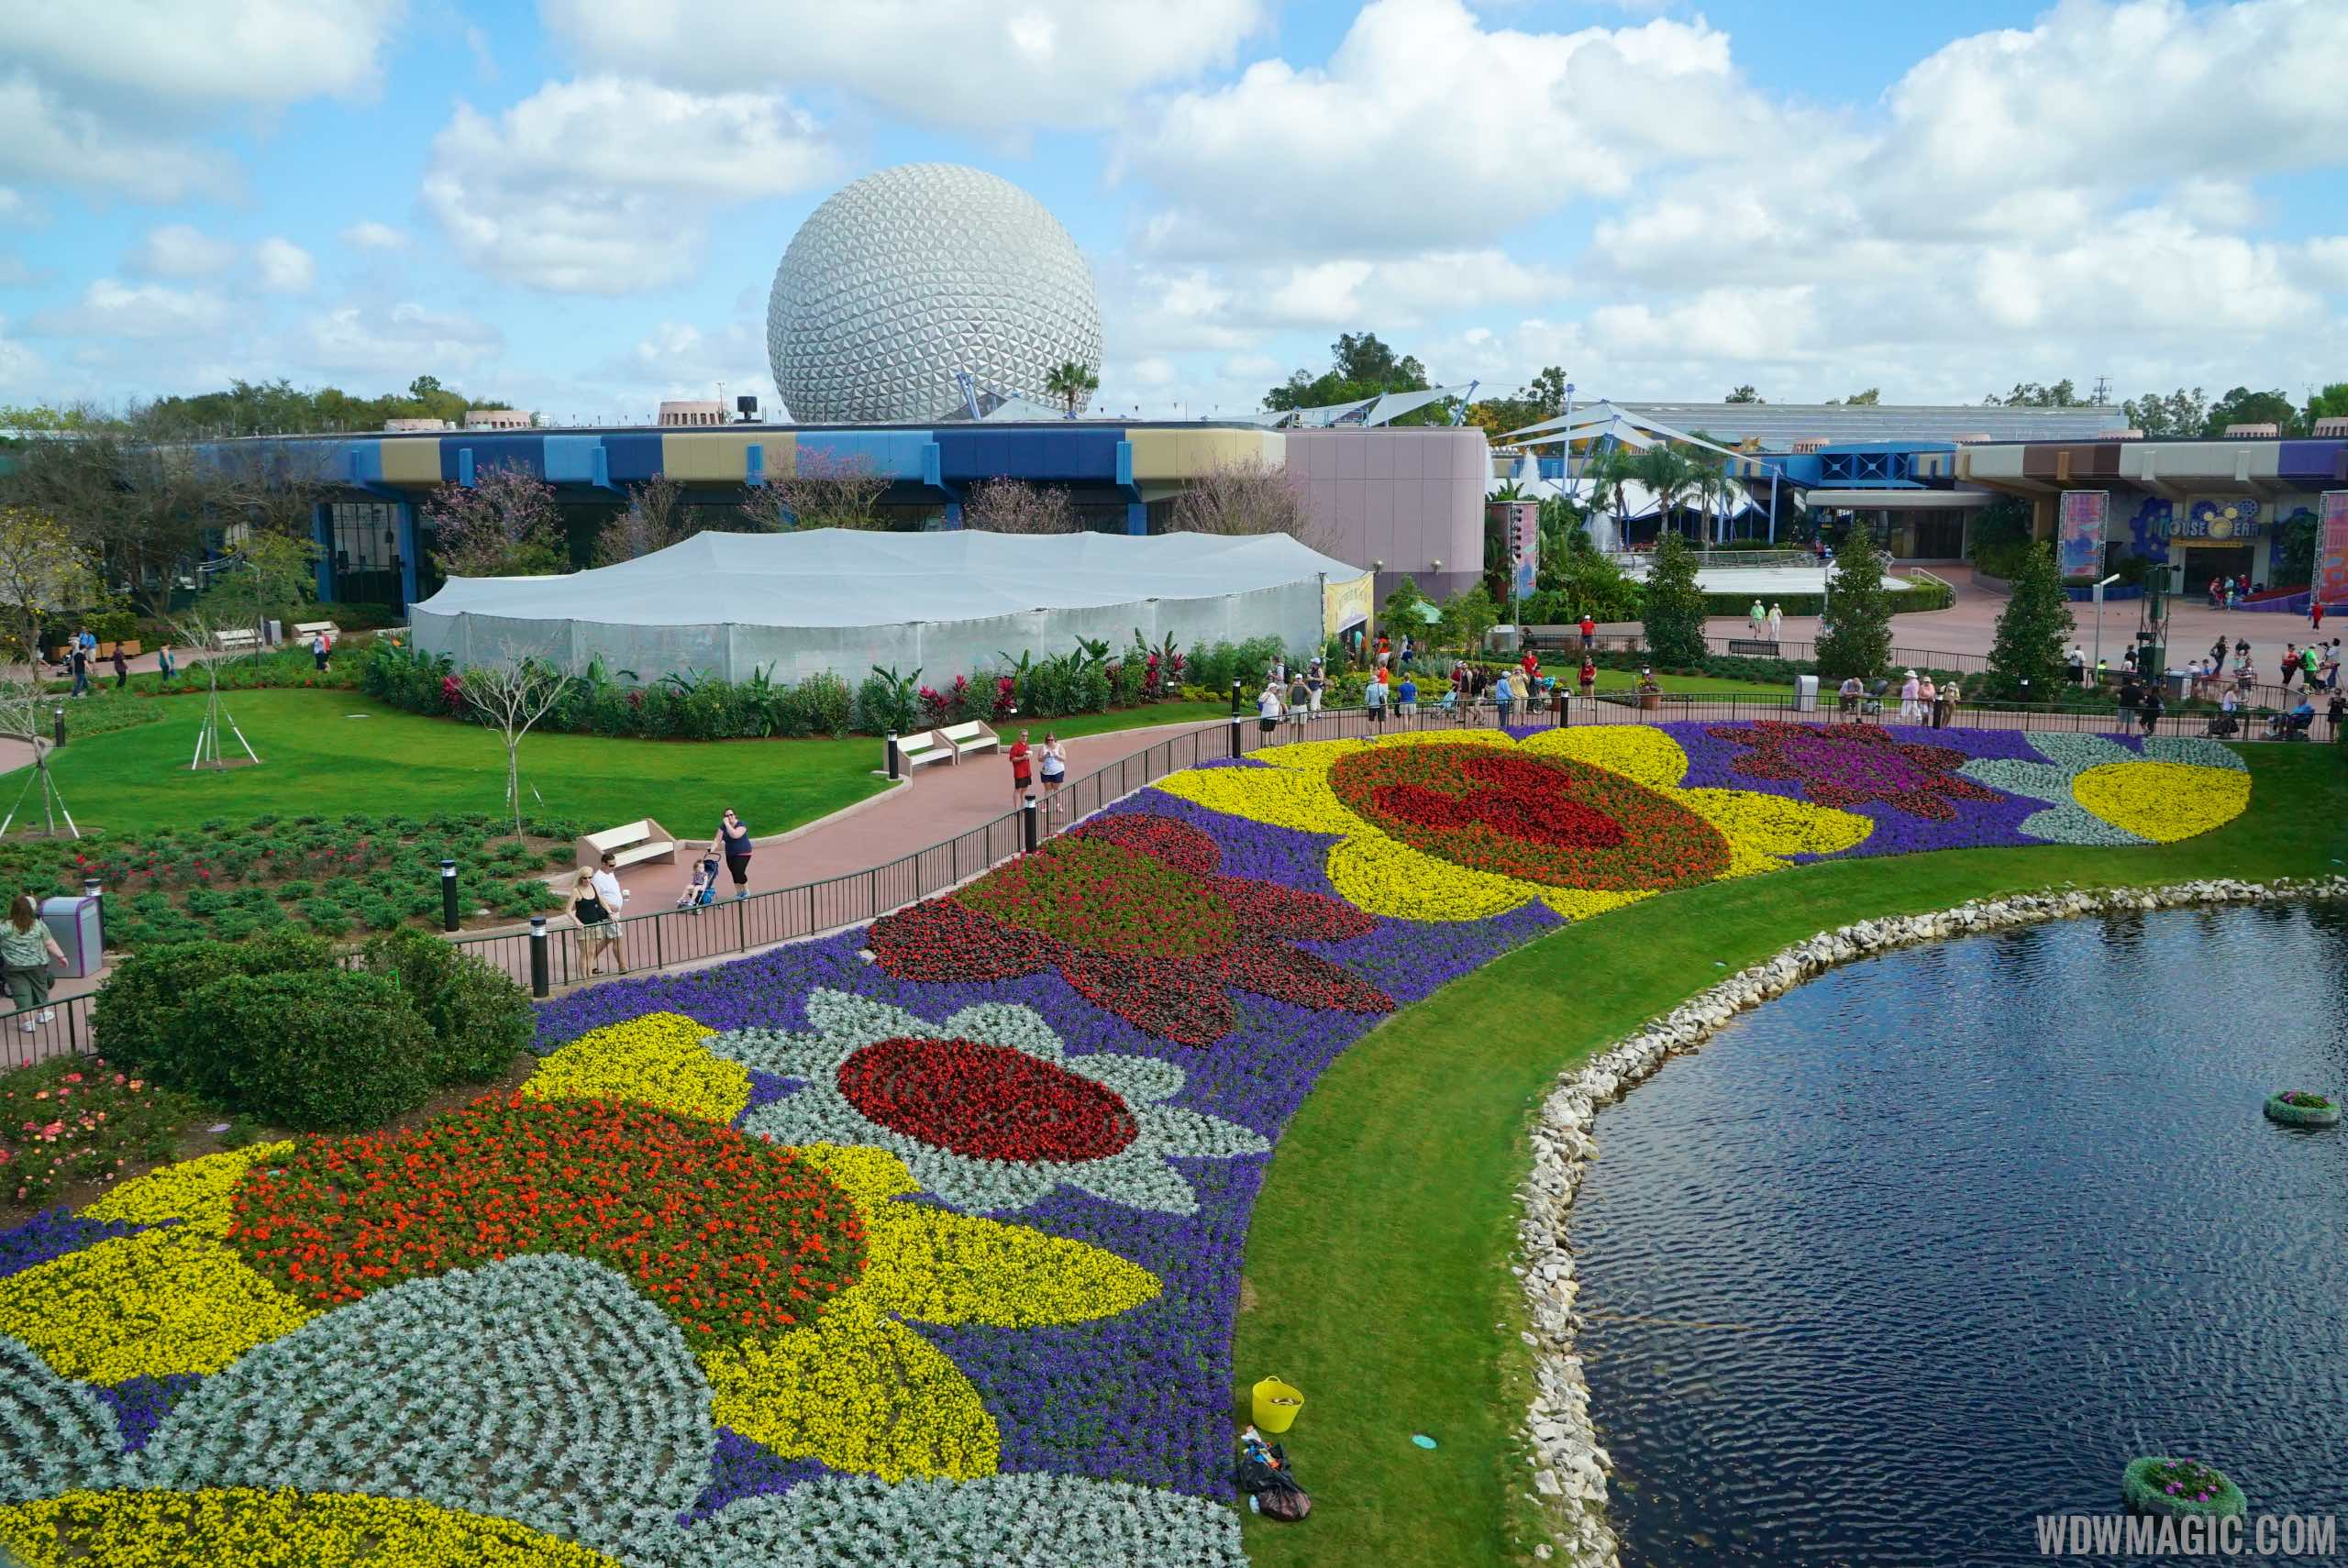 2015 Epcot Flower and Garden Festival - Future World flower display